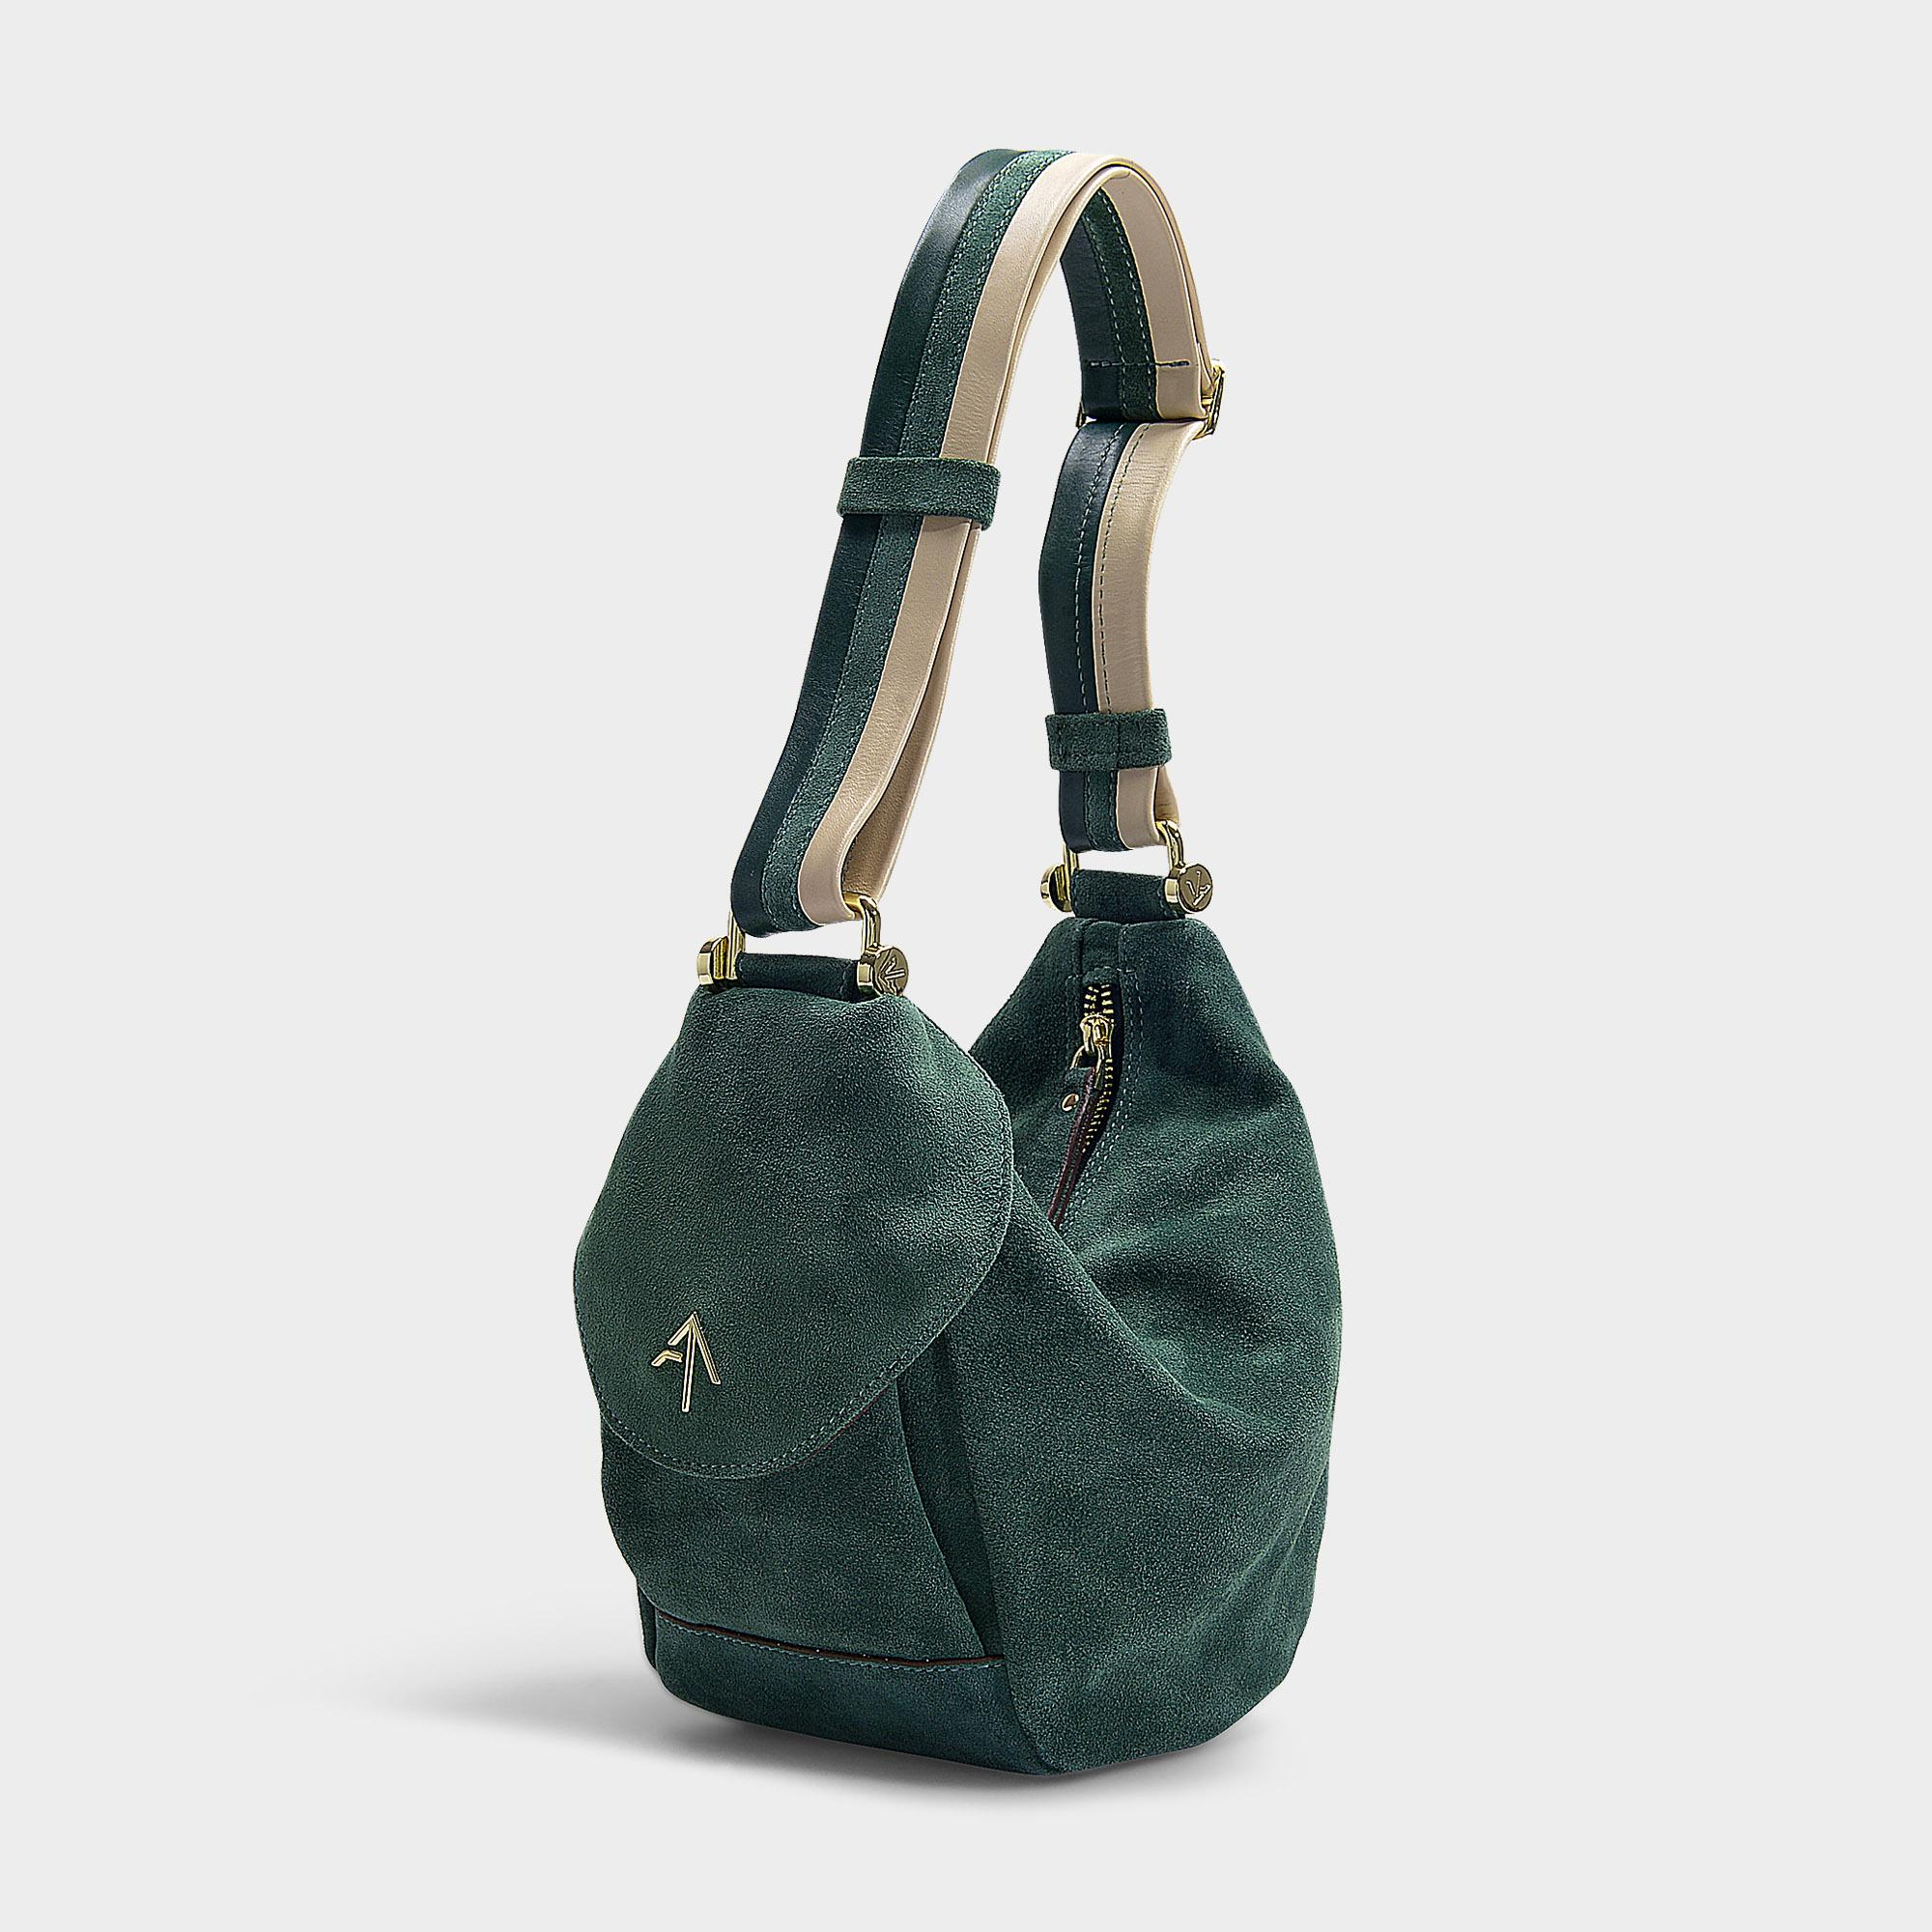 dc5fa27702cb manu-atelier-Multicoloured-Hobo-Fernweh-Bag -In-Monte-Green-And-Light-Beige-Vegetable-Tanned-Calf-Leather-And-Suede.jpeg